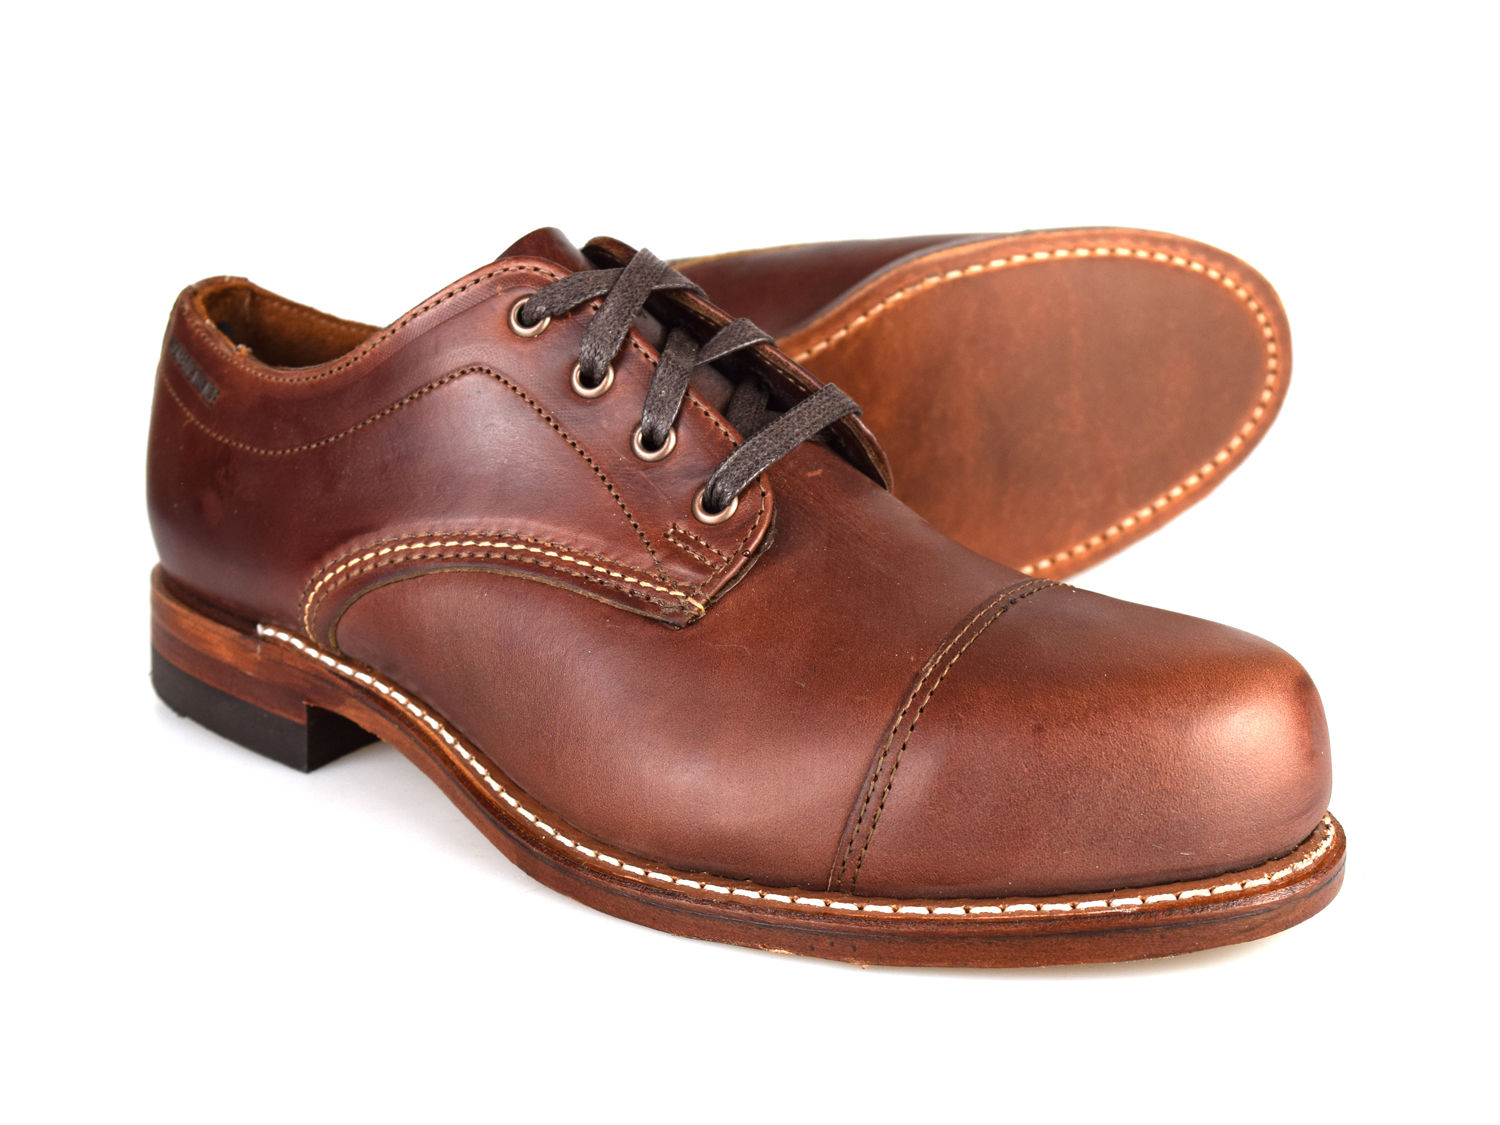 Details about Wolverine 1000 Miles Watson Welted Horween Leather Brown Mens Shoes